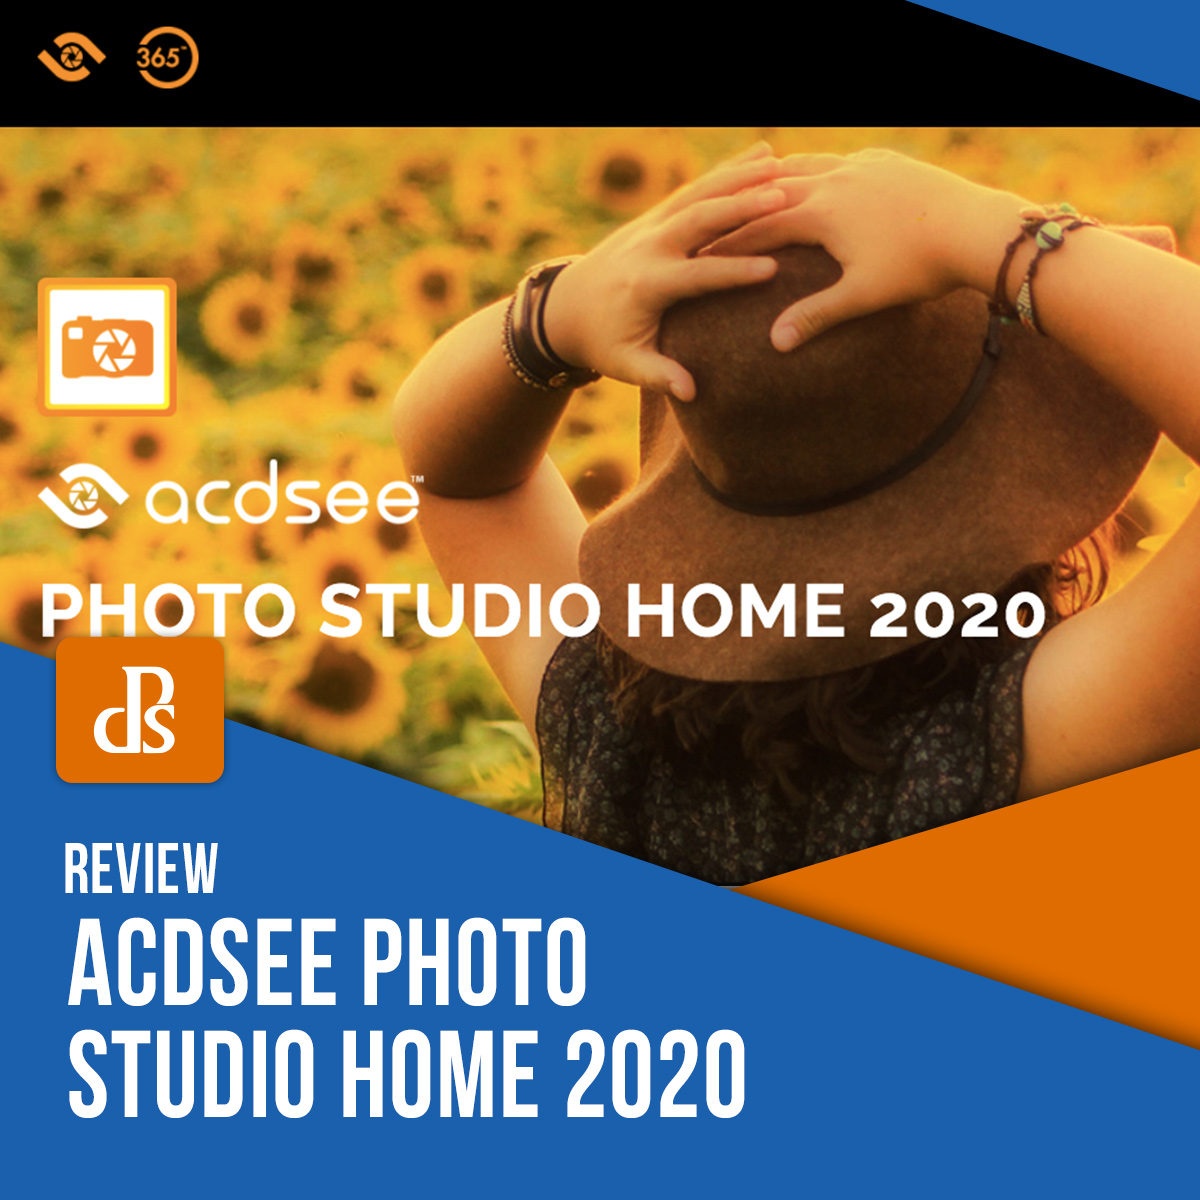 dps-acdsee-photo-studio-home-2020-review